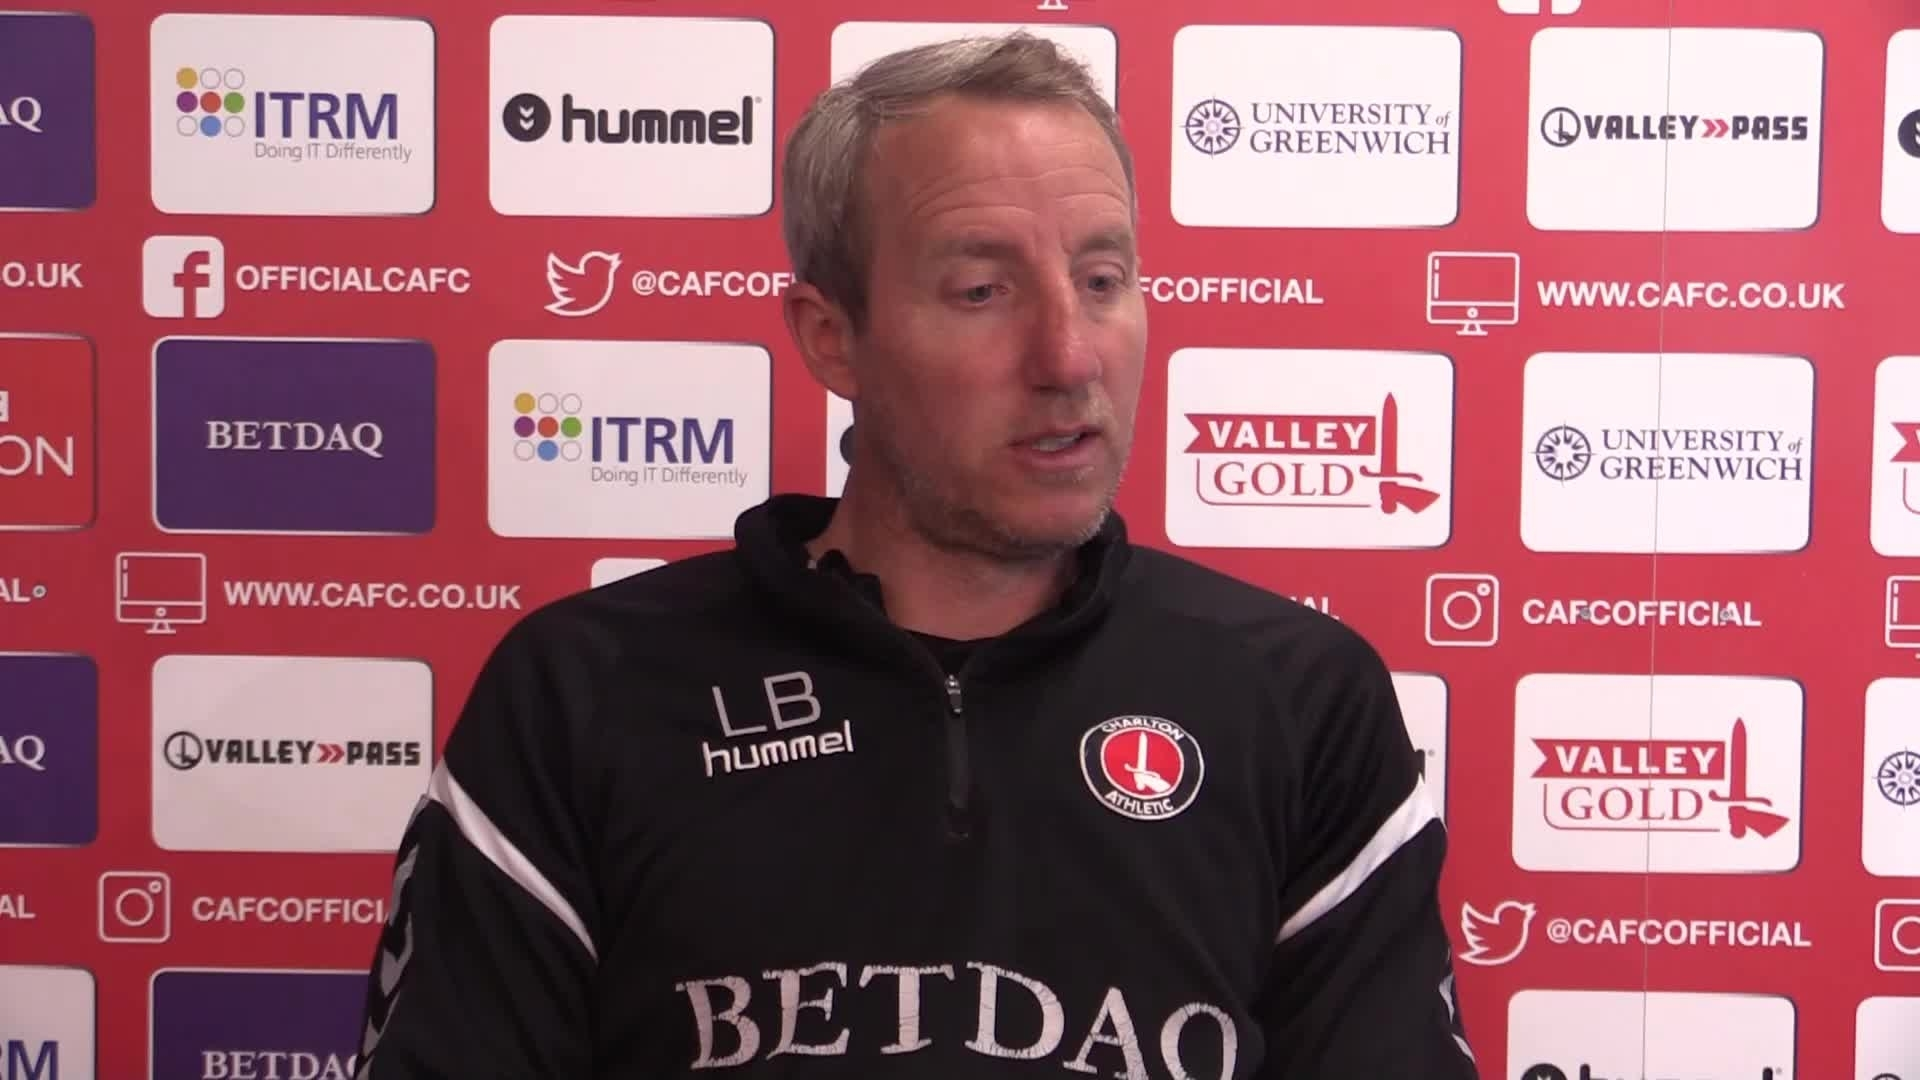 Lee Bowyer's pre-Oxford press conference (April 2019)